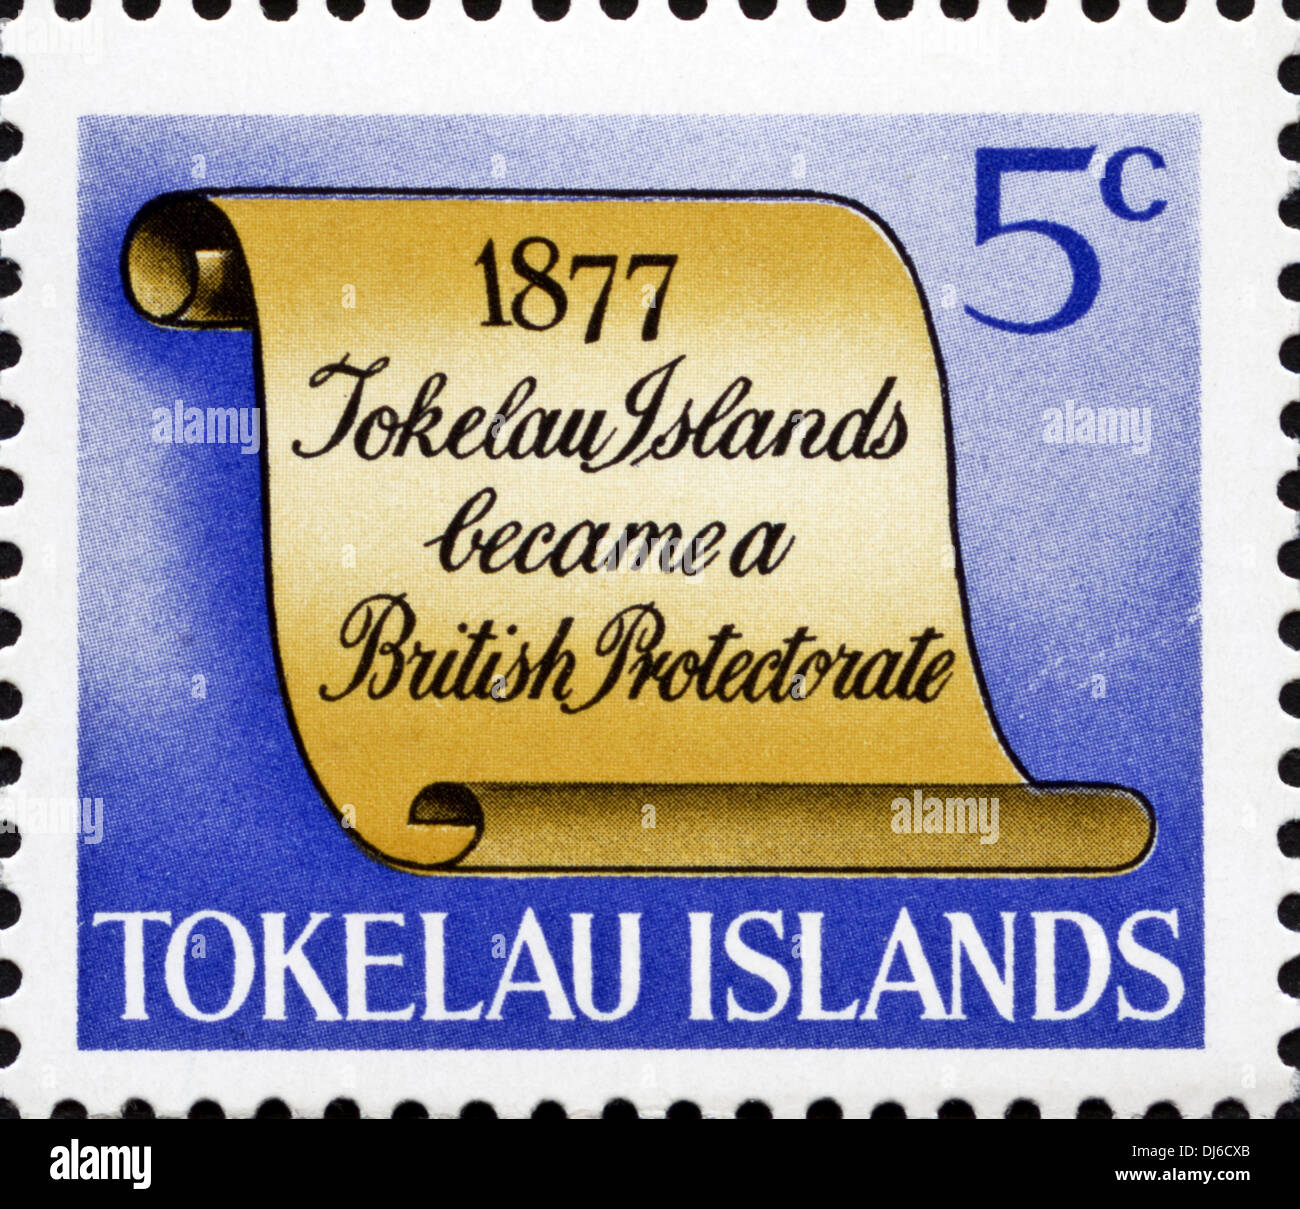 postage stamp Tokelau Islands 5c featuring 1877 significant date in island history dated 1969 - Stock Image